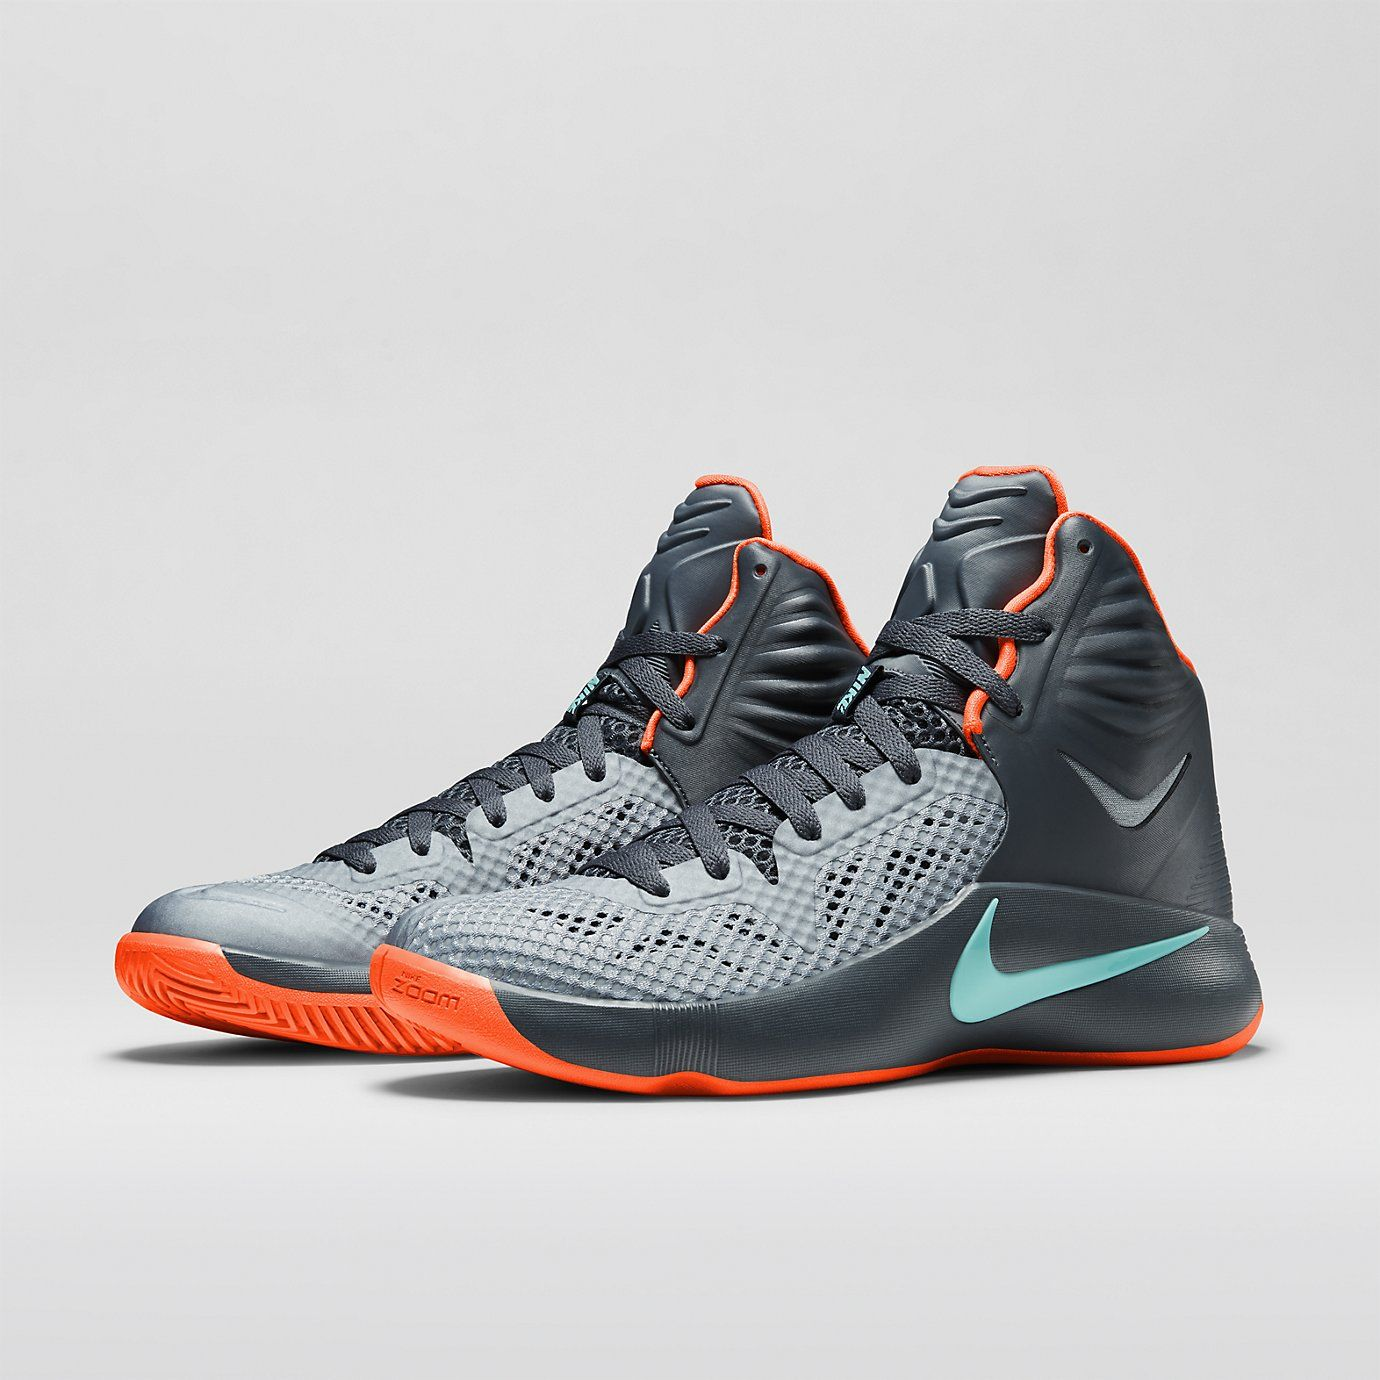 33b8f66cf36d Nike Zoom Hyperfuse 2014 Men s Basketball Shoe. Nike Store